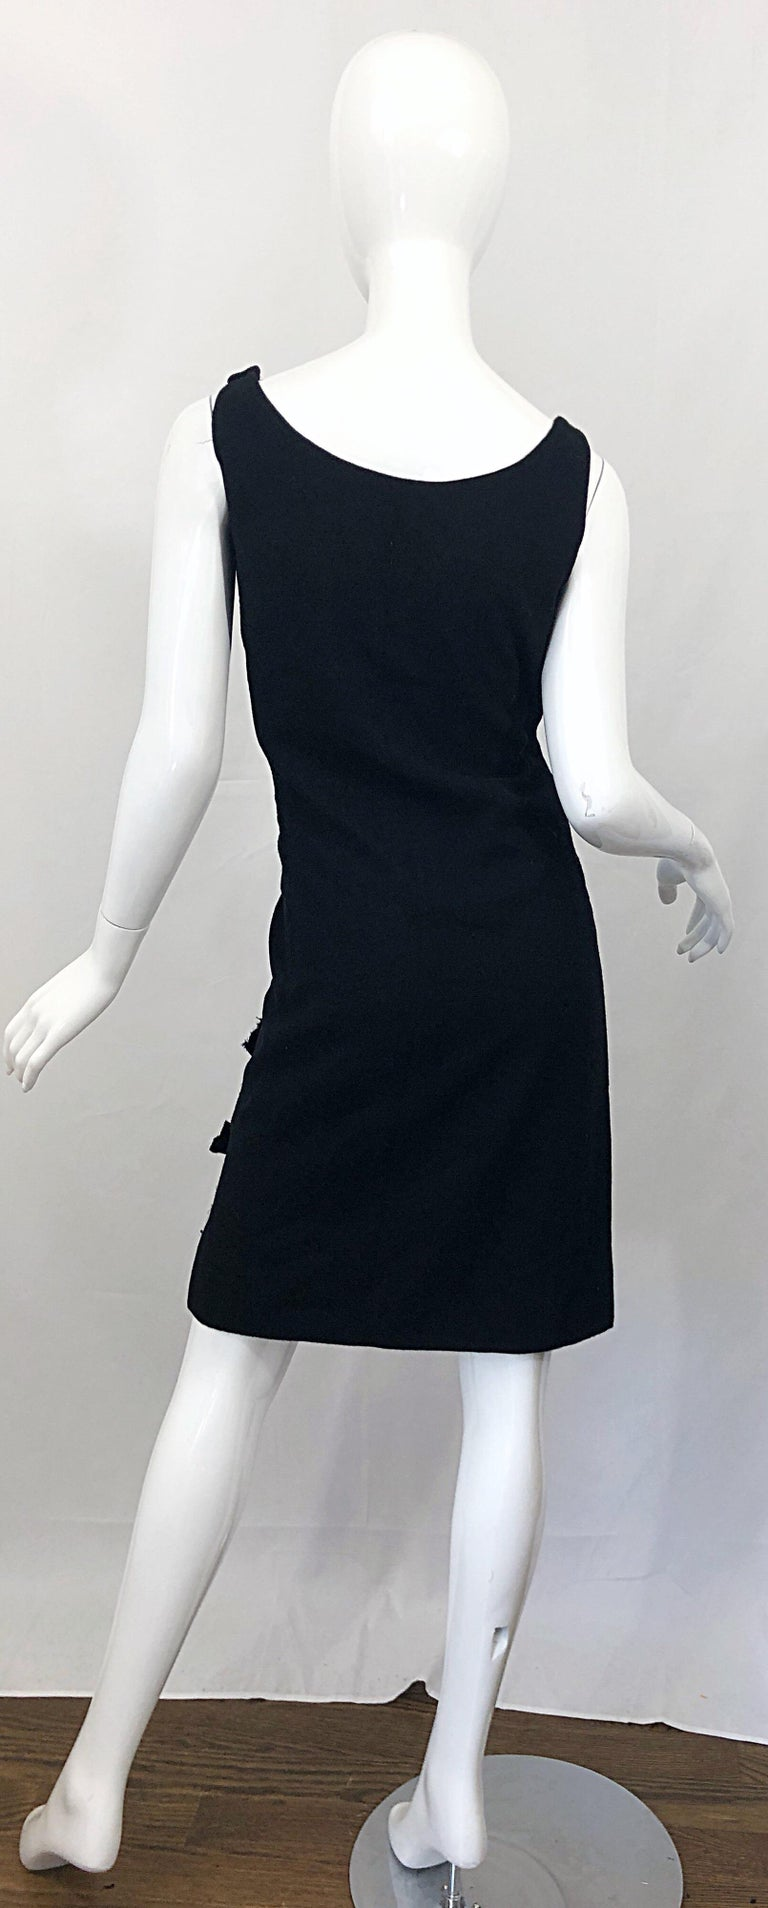 Geoffrey Beene 1960s Black Sleeveless Bow Detail Vintage 60s Wool Sheath Dress In Excellent Condition For Sale In Chicago, IL